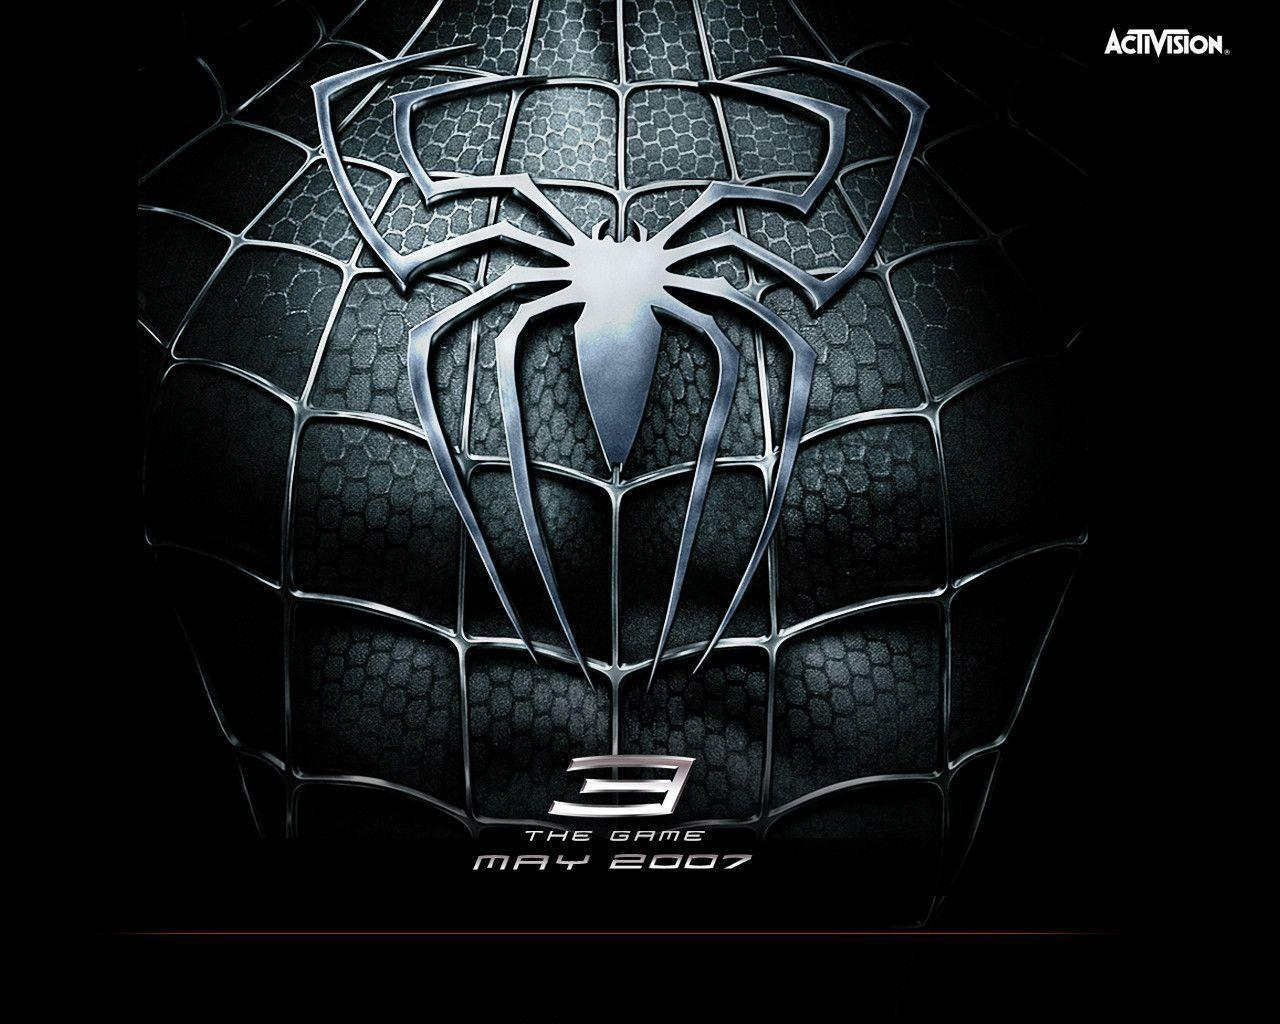 Free spiderman wallpapers wallpaper cave.